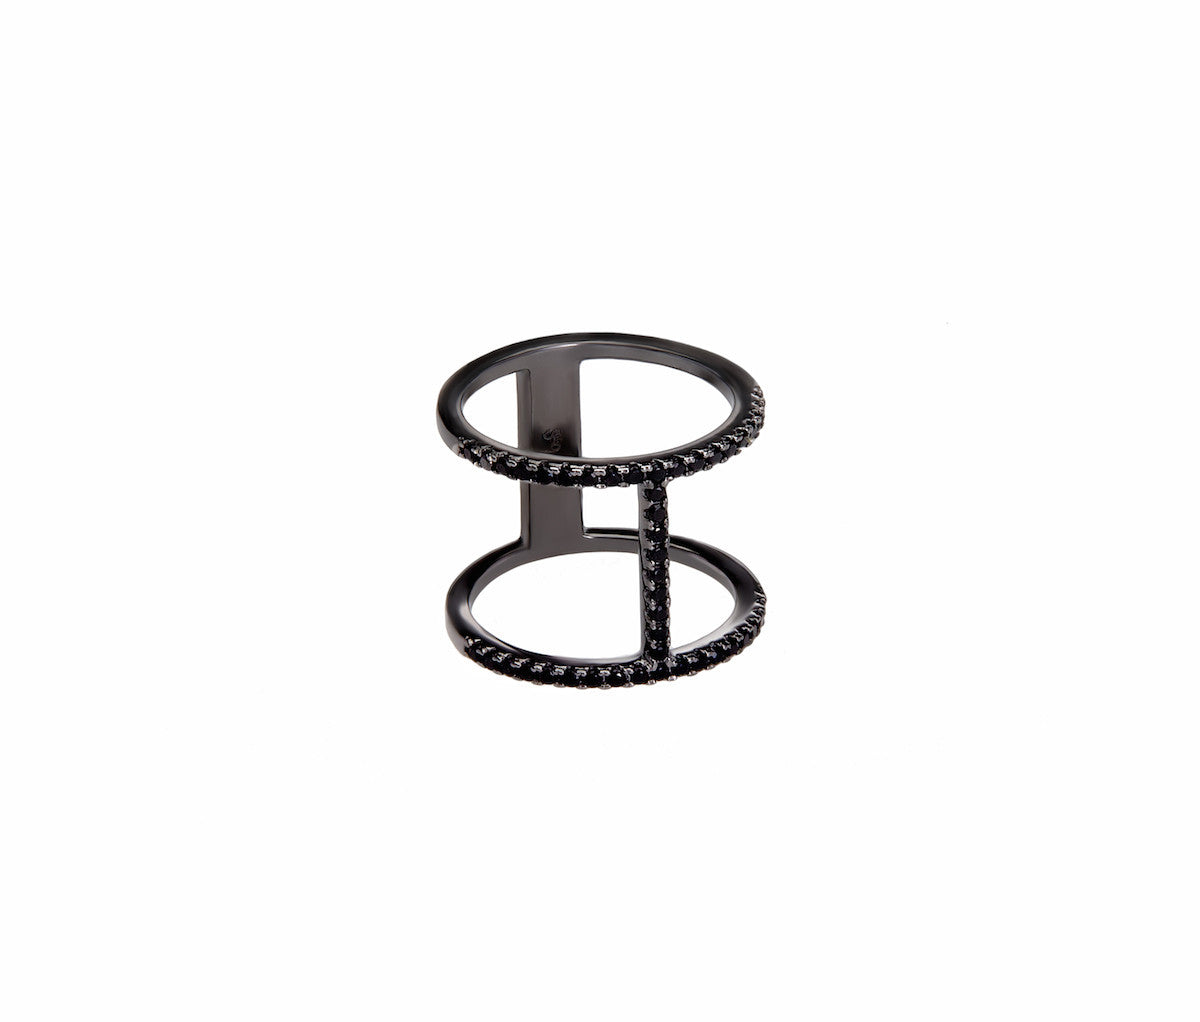 Black Silver H-Shaped Dual Band Ring